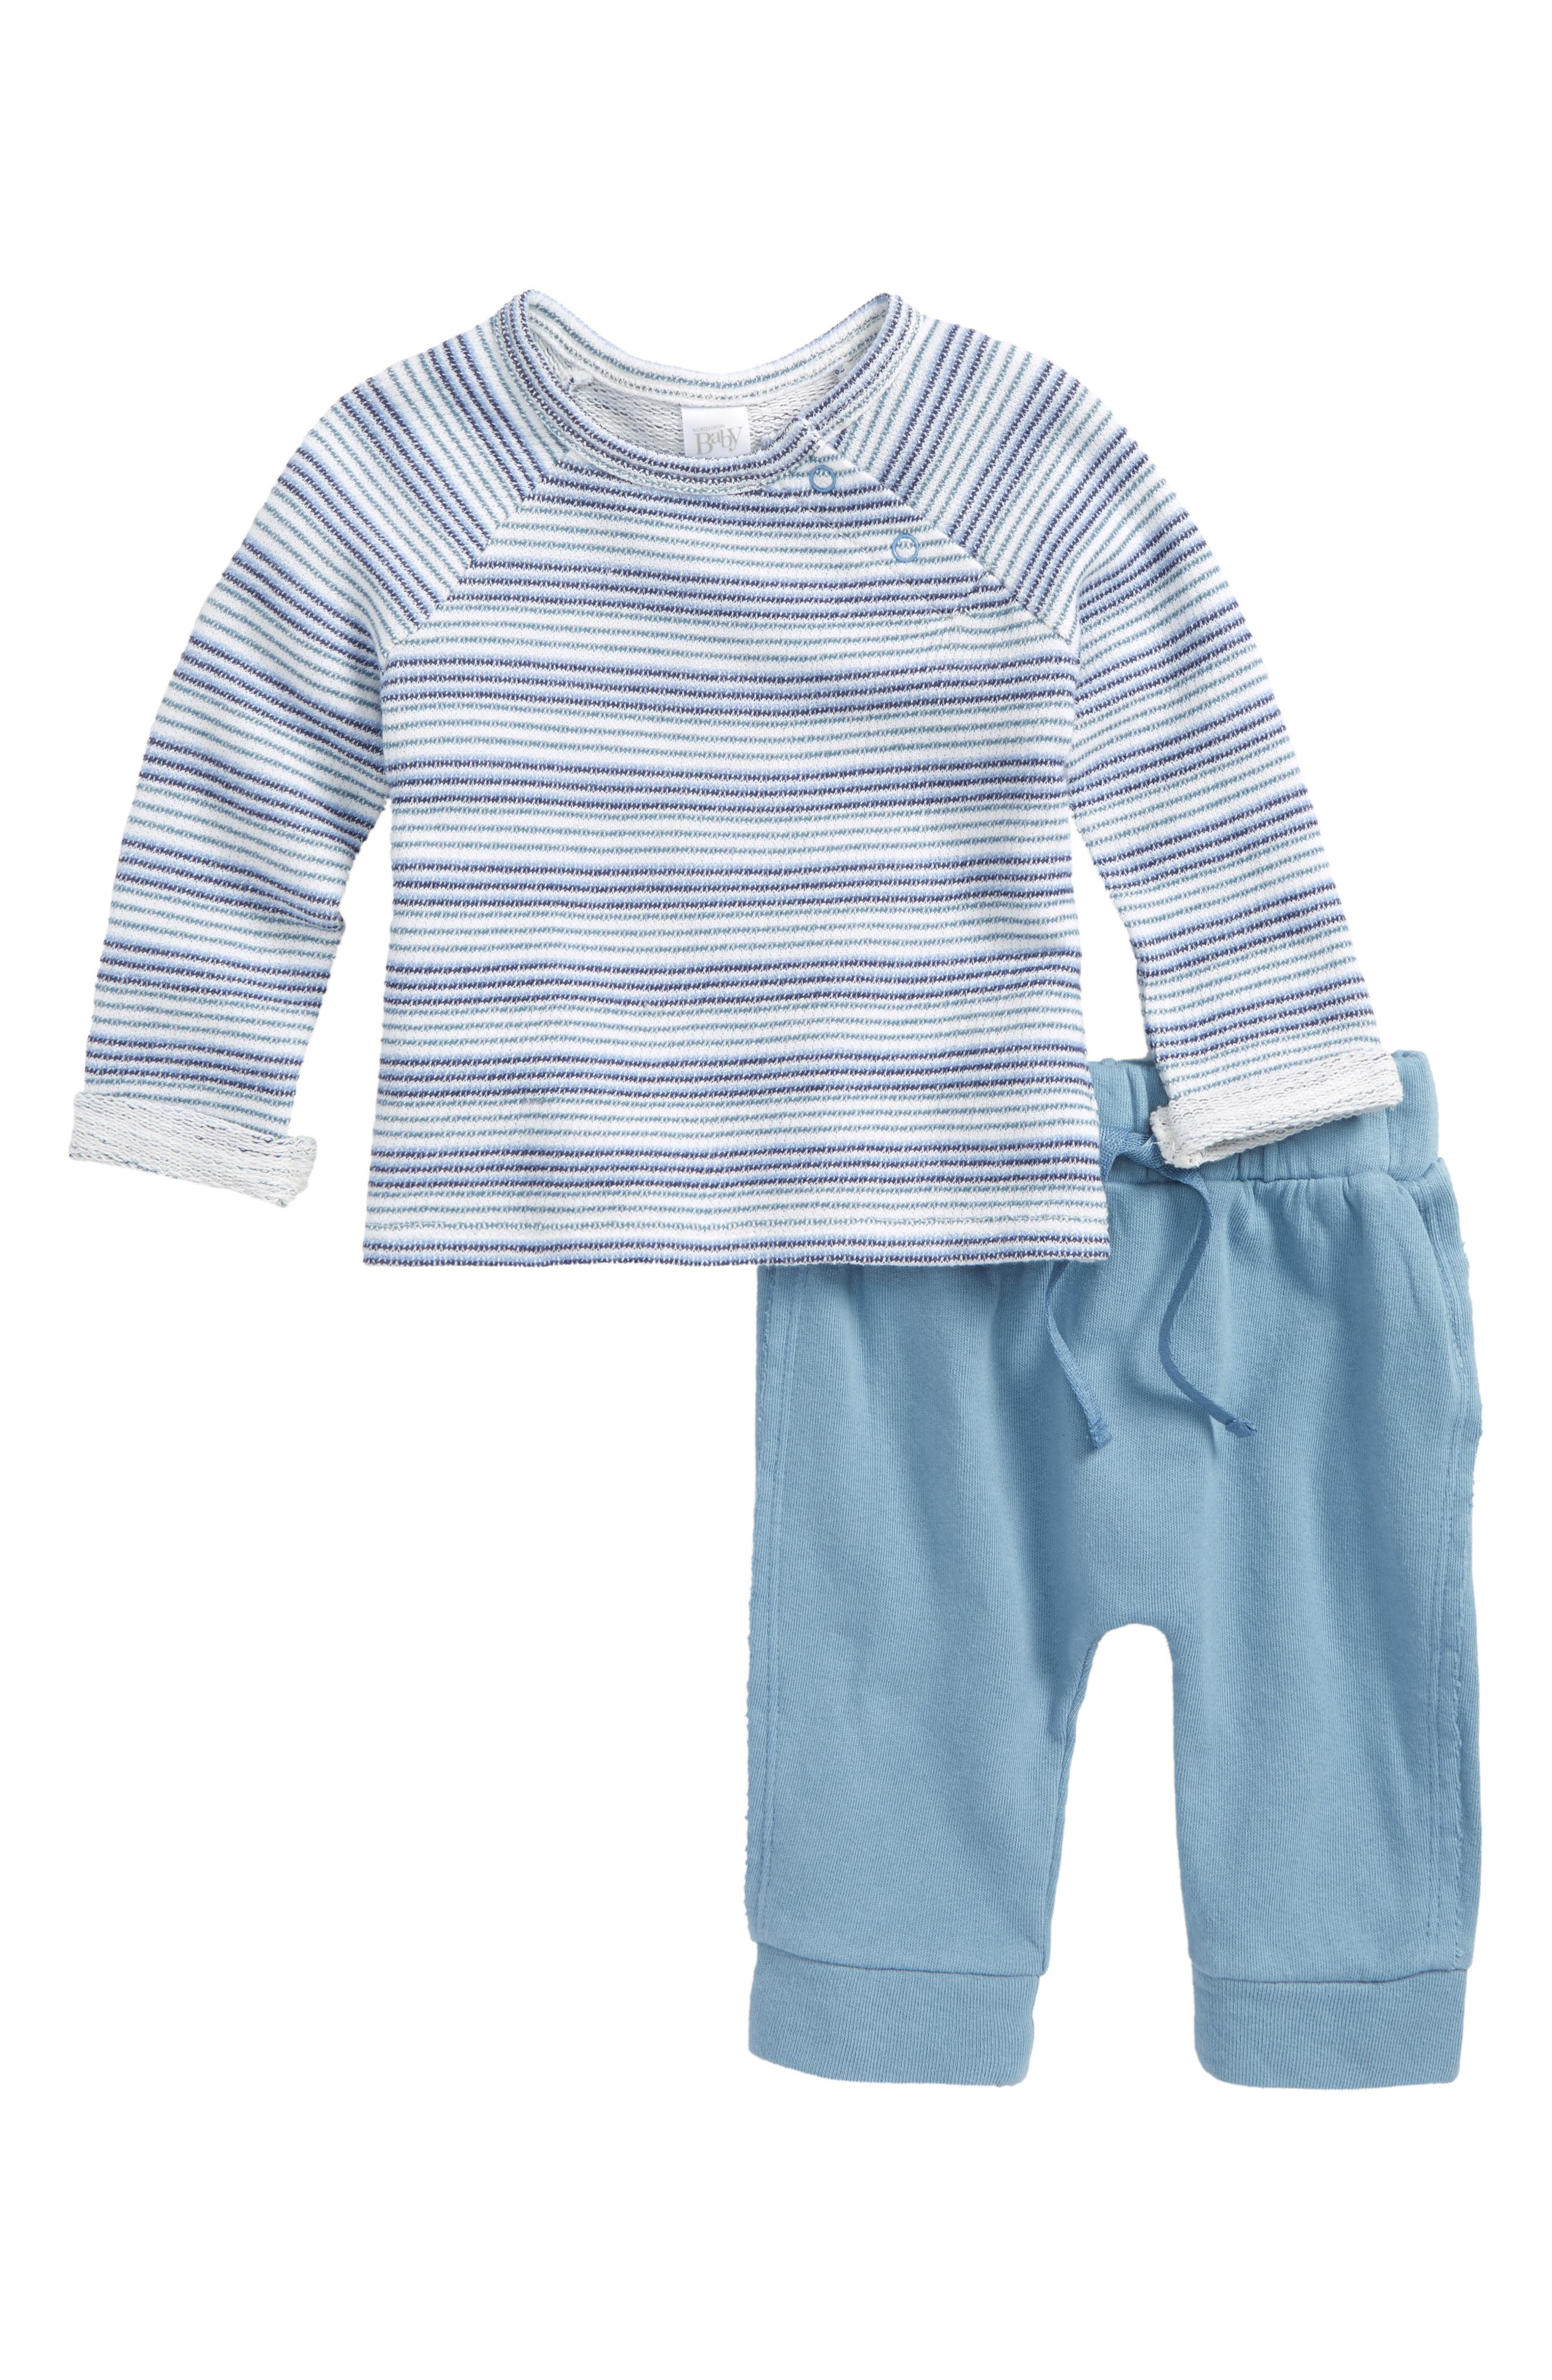 Nordstrom Baby Knit Top & Pants Set (Baby Boys)